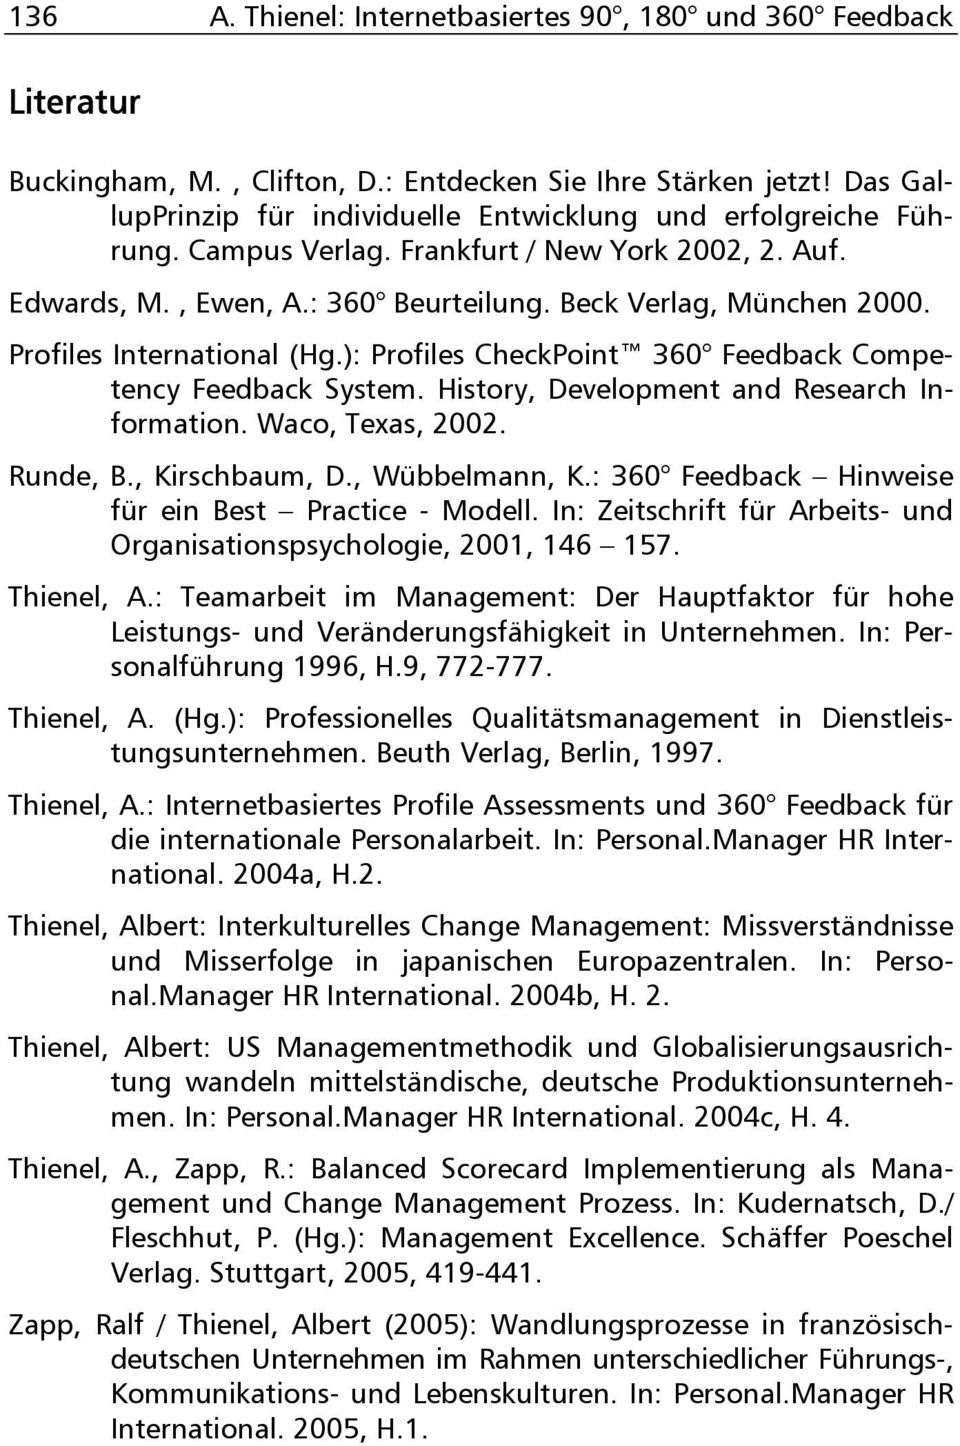 Profiles International (Hg.): Profiles CheckPoint 360 Feedback Competency Feedback System. History, Development and Research Information. Waco, Texas, 2002. Runde, B., Kirschbaum, D., Wübbelmann, K.